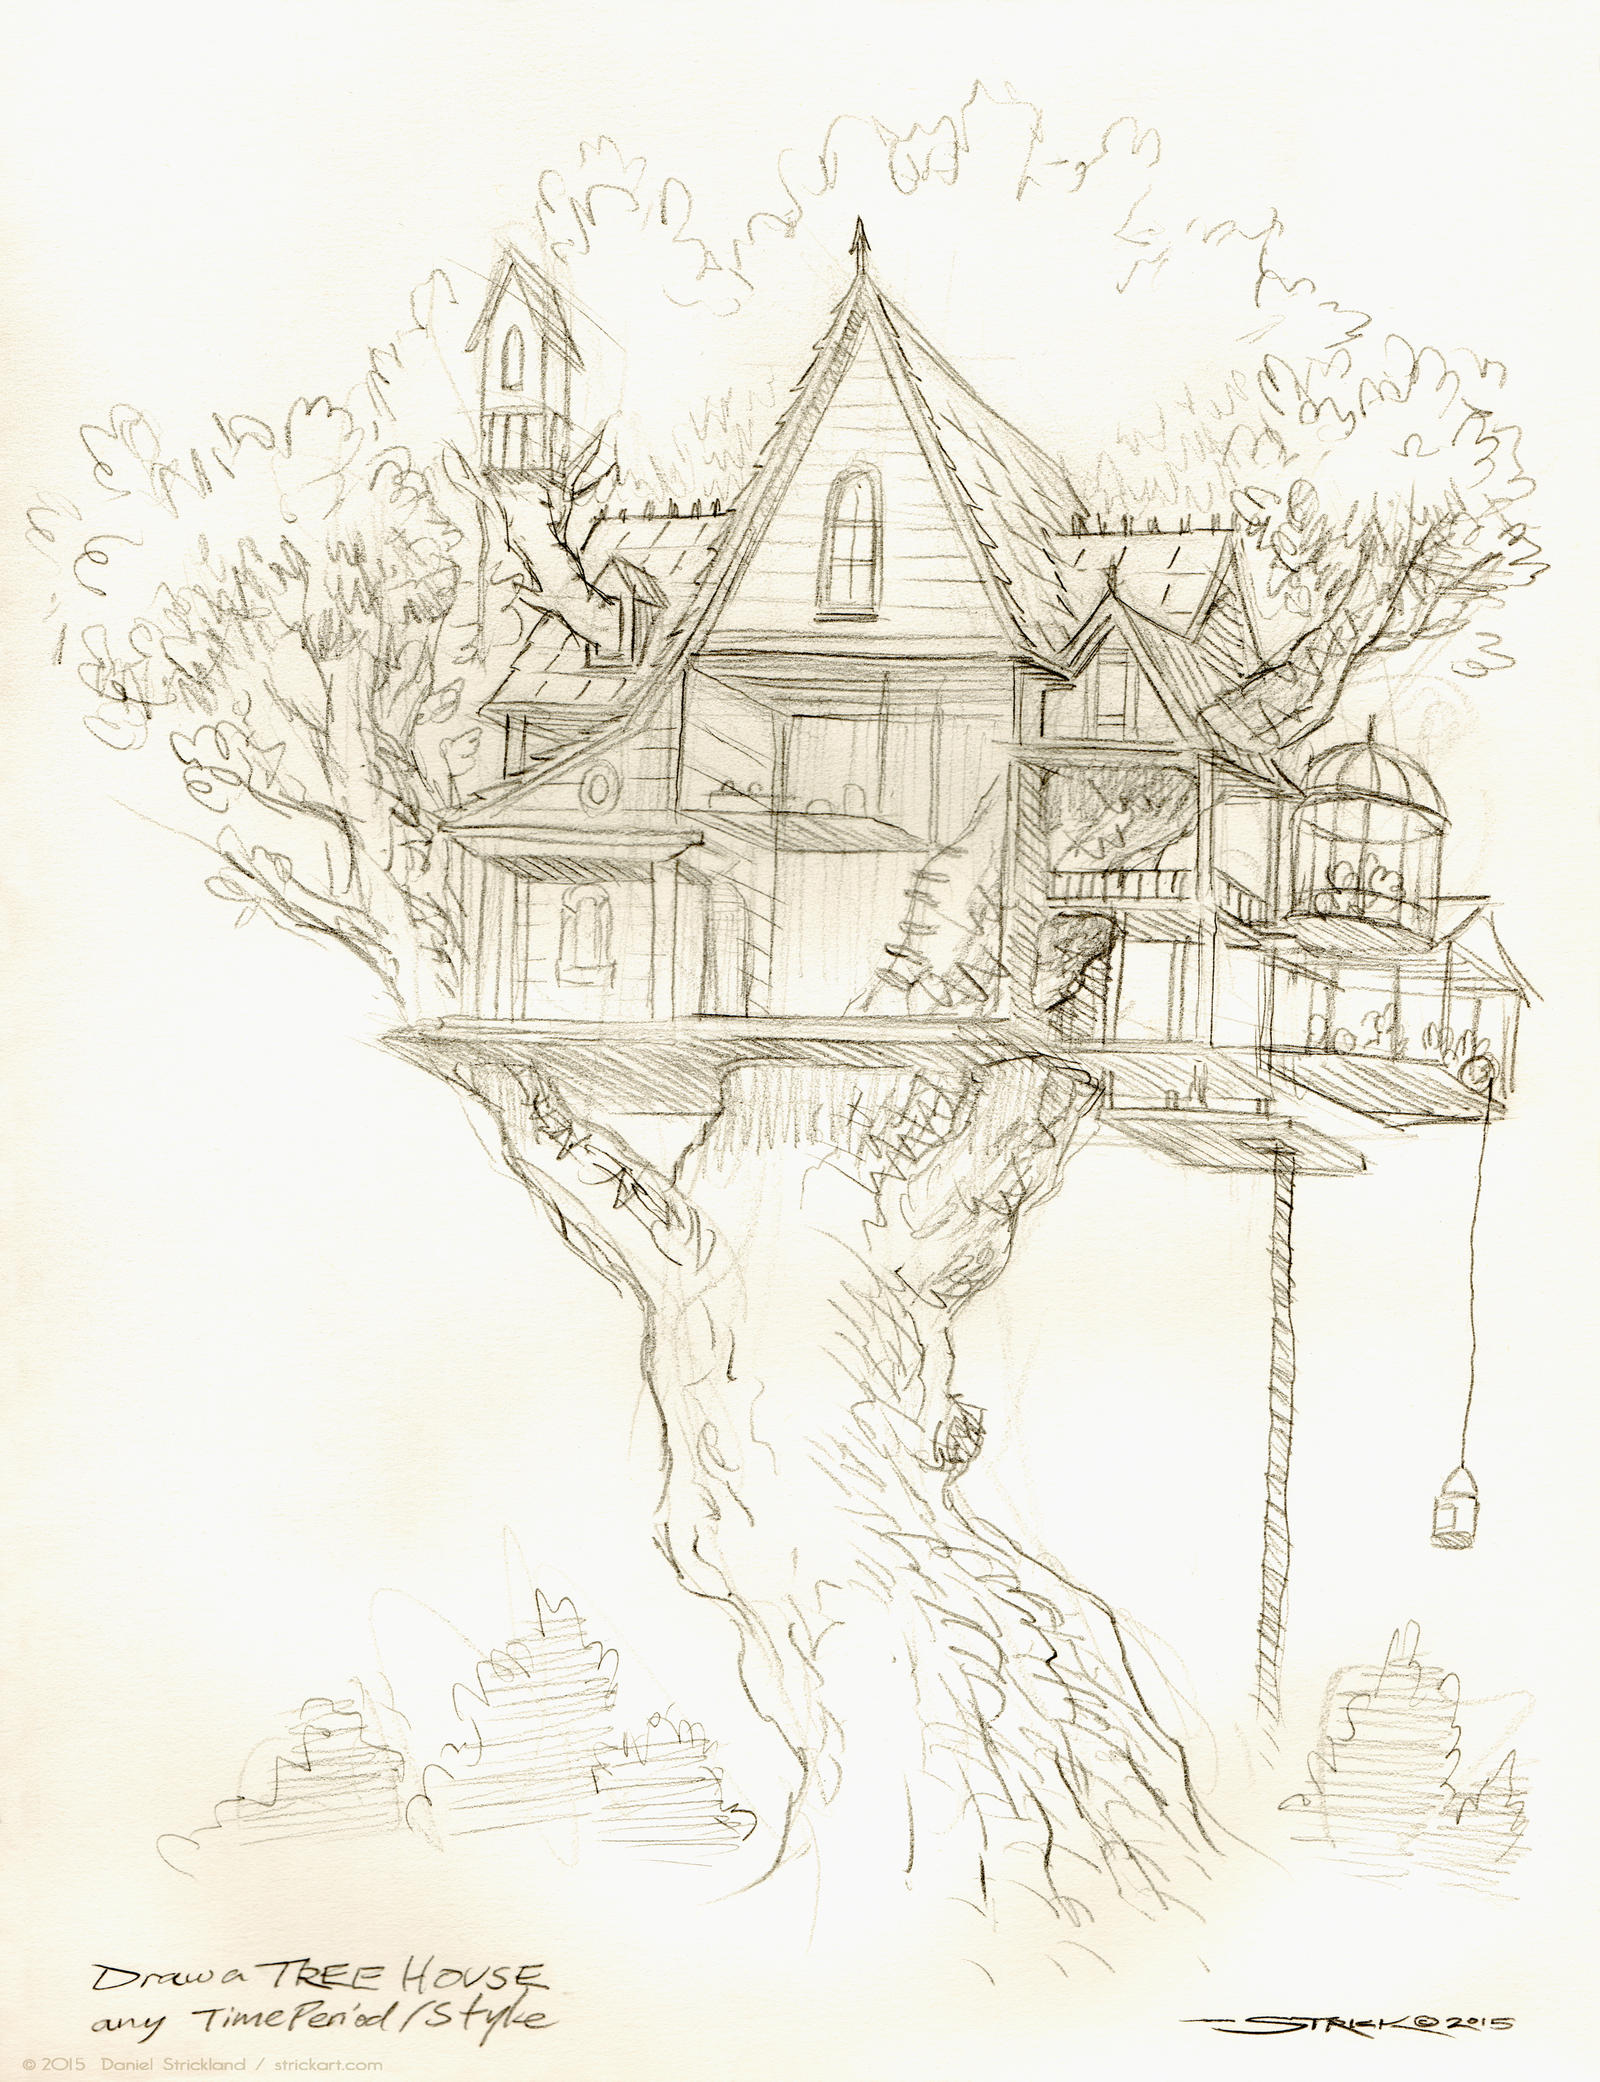 Treehouse by strickart